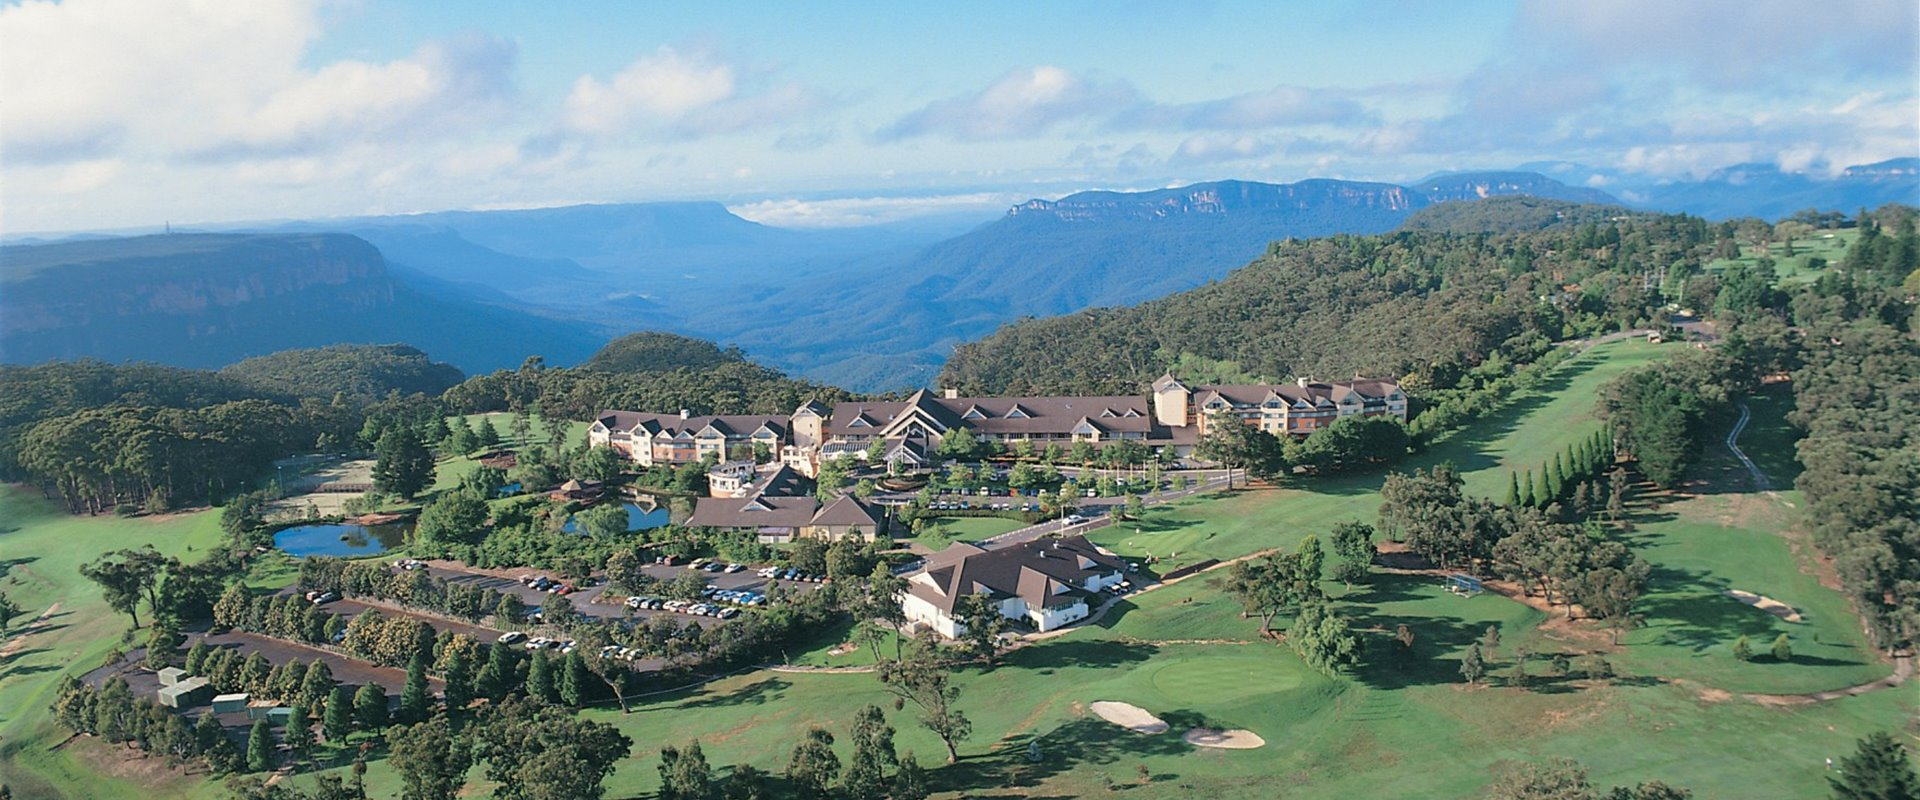 Fairmont Resort M Gallery | Conference Venues Blue Mountains | Conference Venues New South Wales